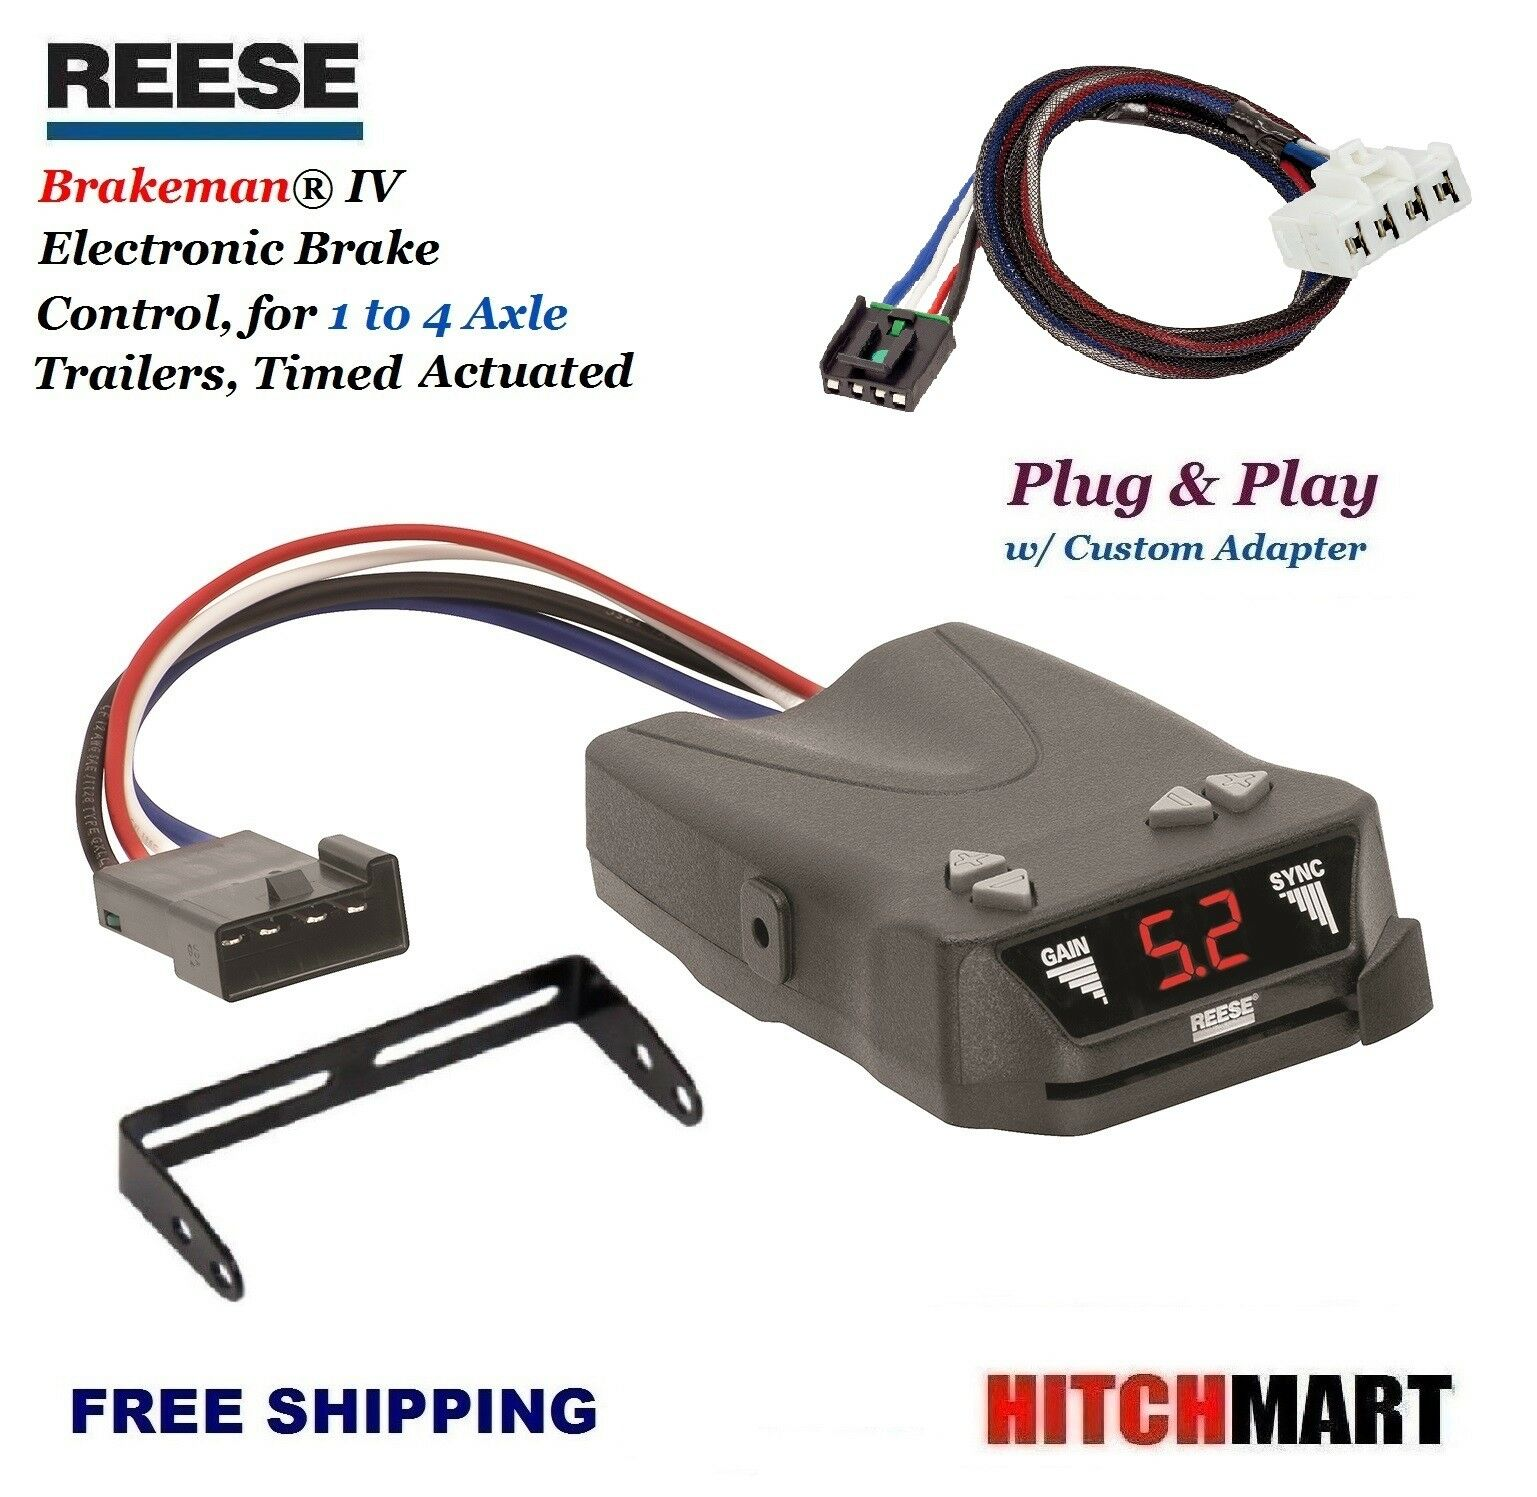 REESE TRAILER BRAKE CONTROL w ADAPTER FOR DODGE DURANGO, DAKOTA RAM PICKUP  83504 1 of 5Only 0 available ...